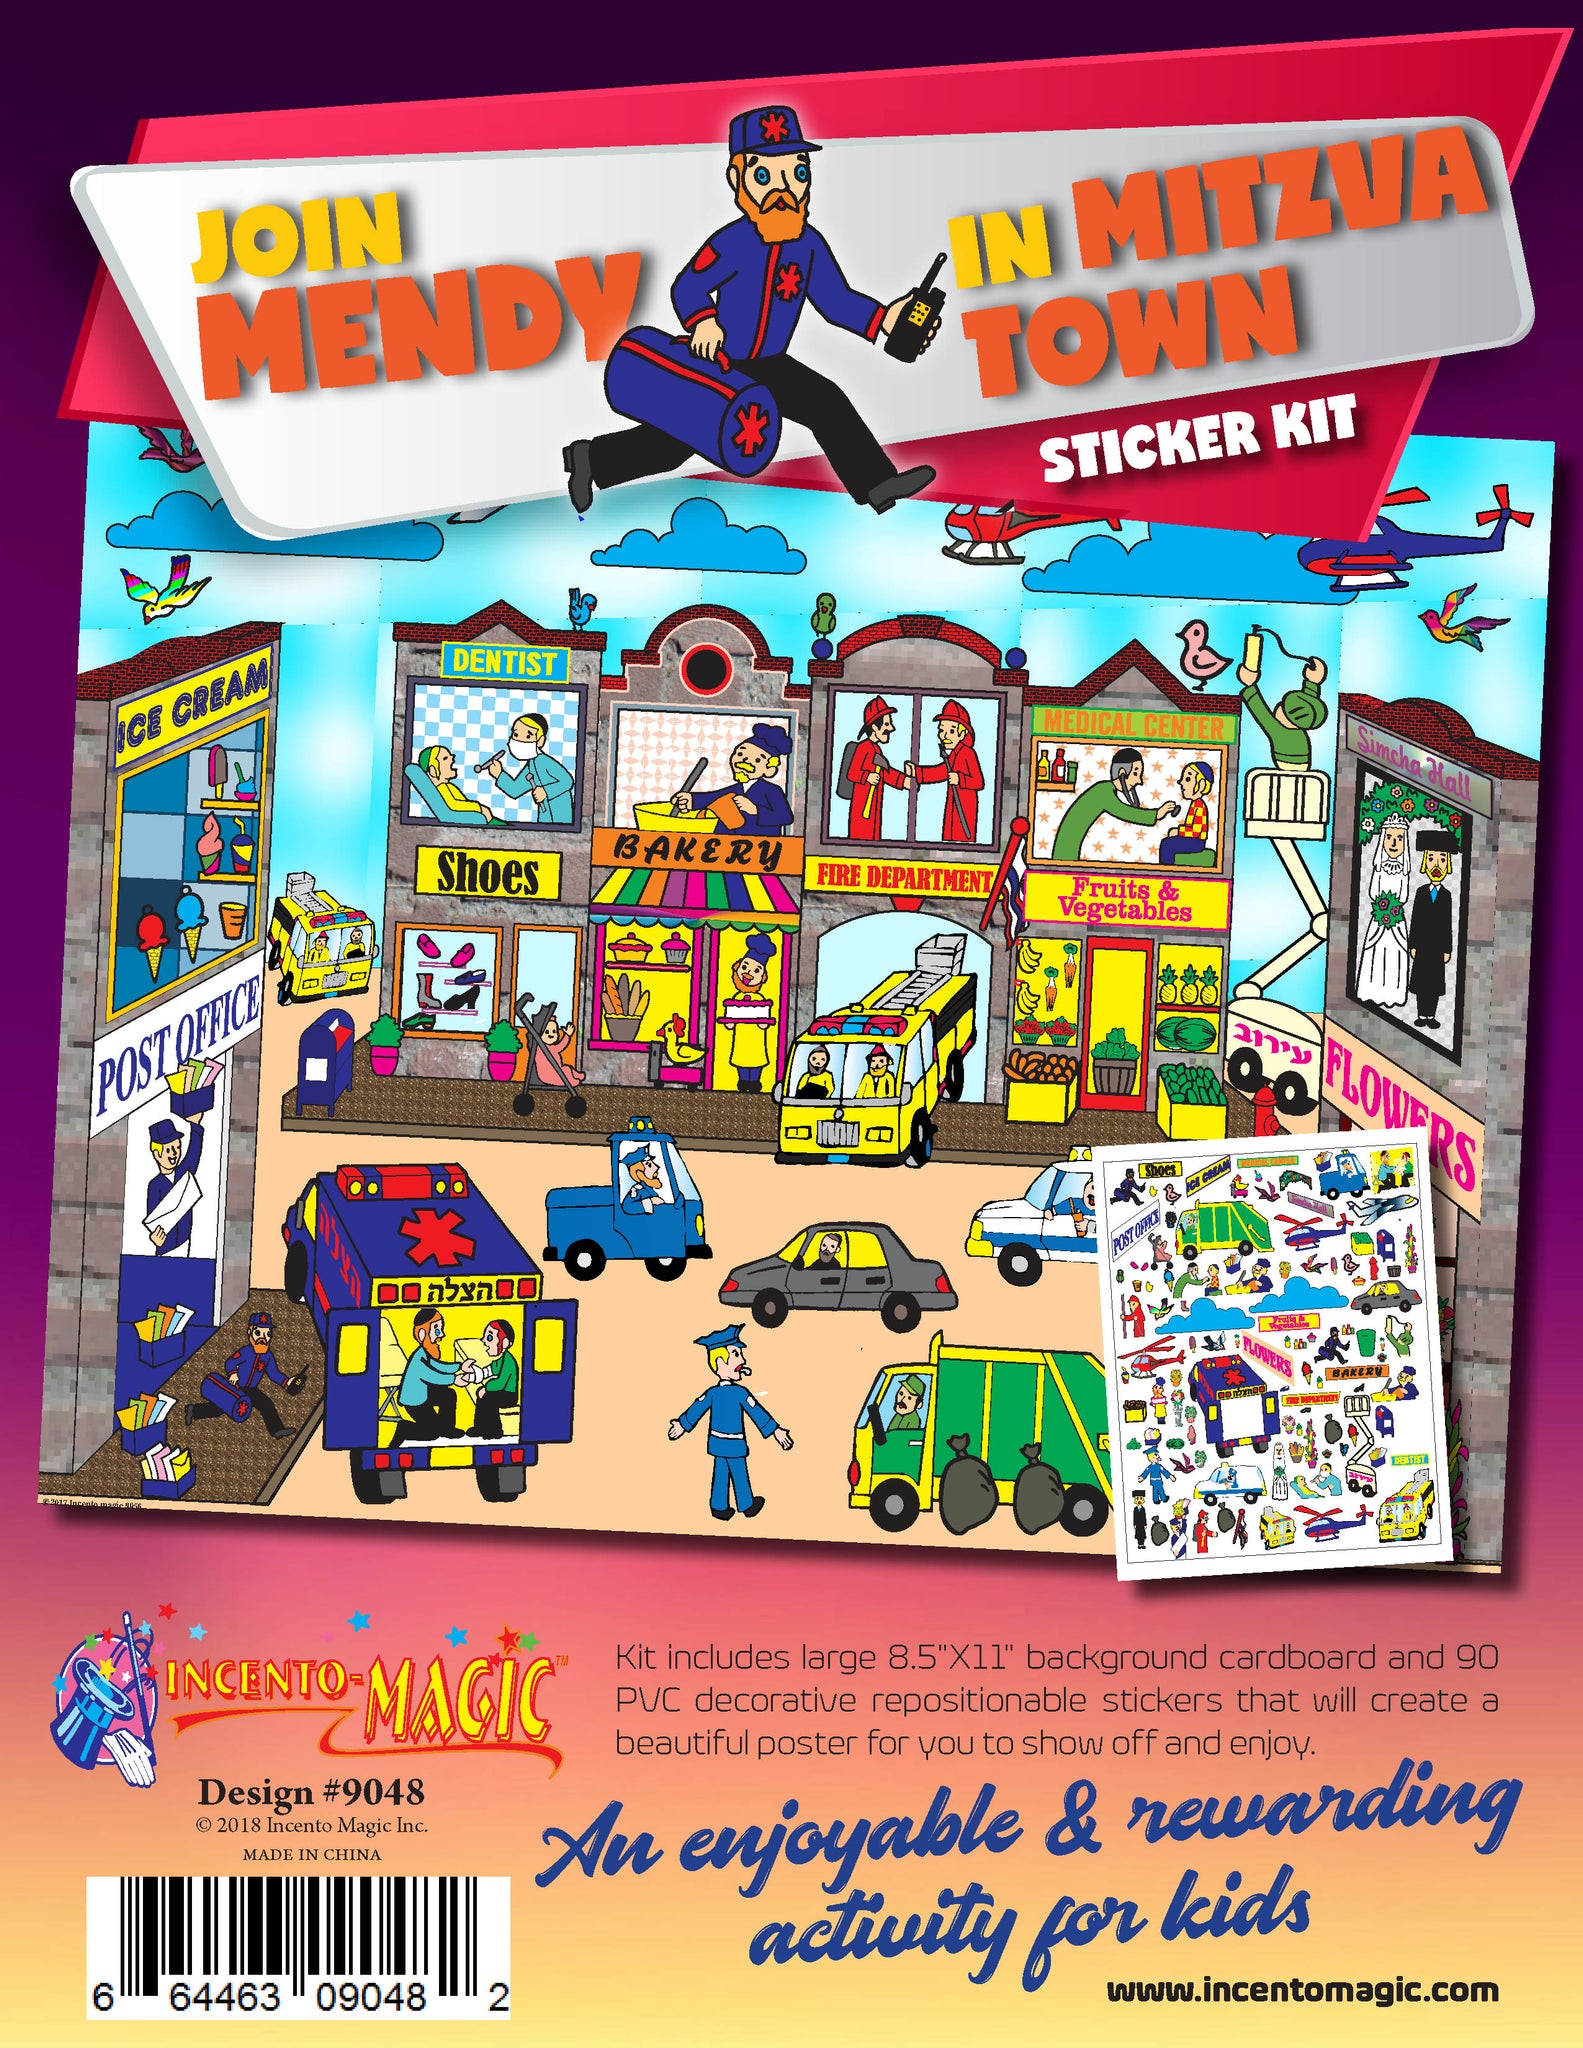 #9048 - Mendy in Mitzvah Town Sticker Kit